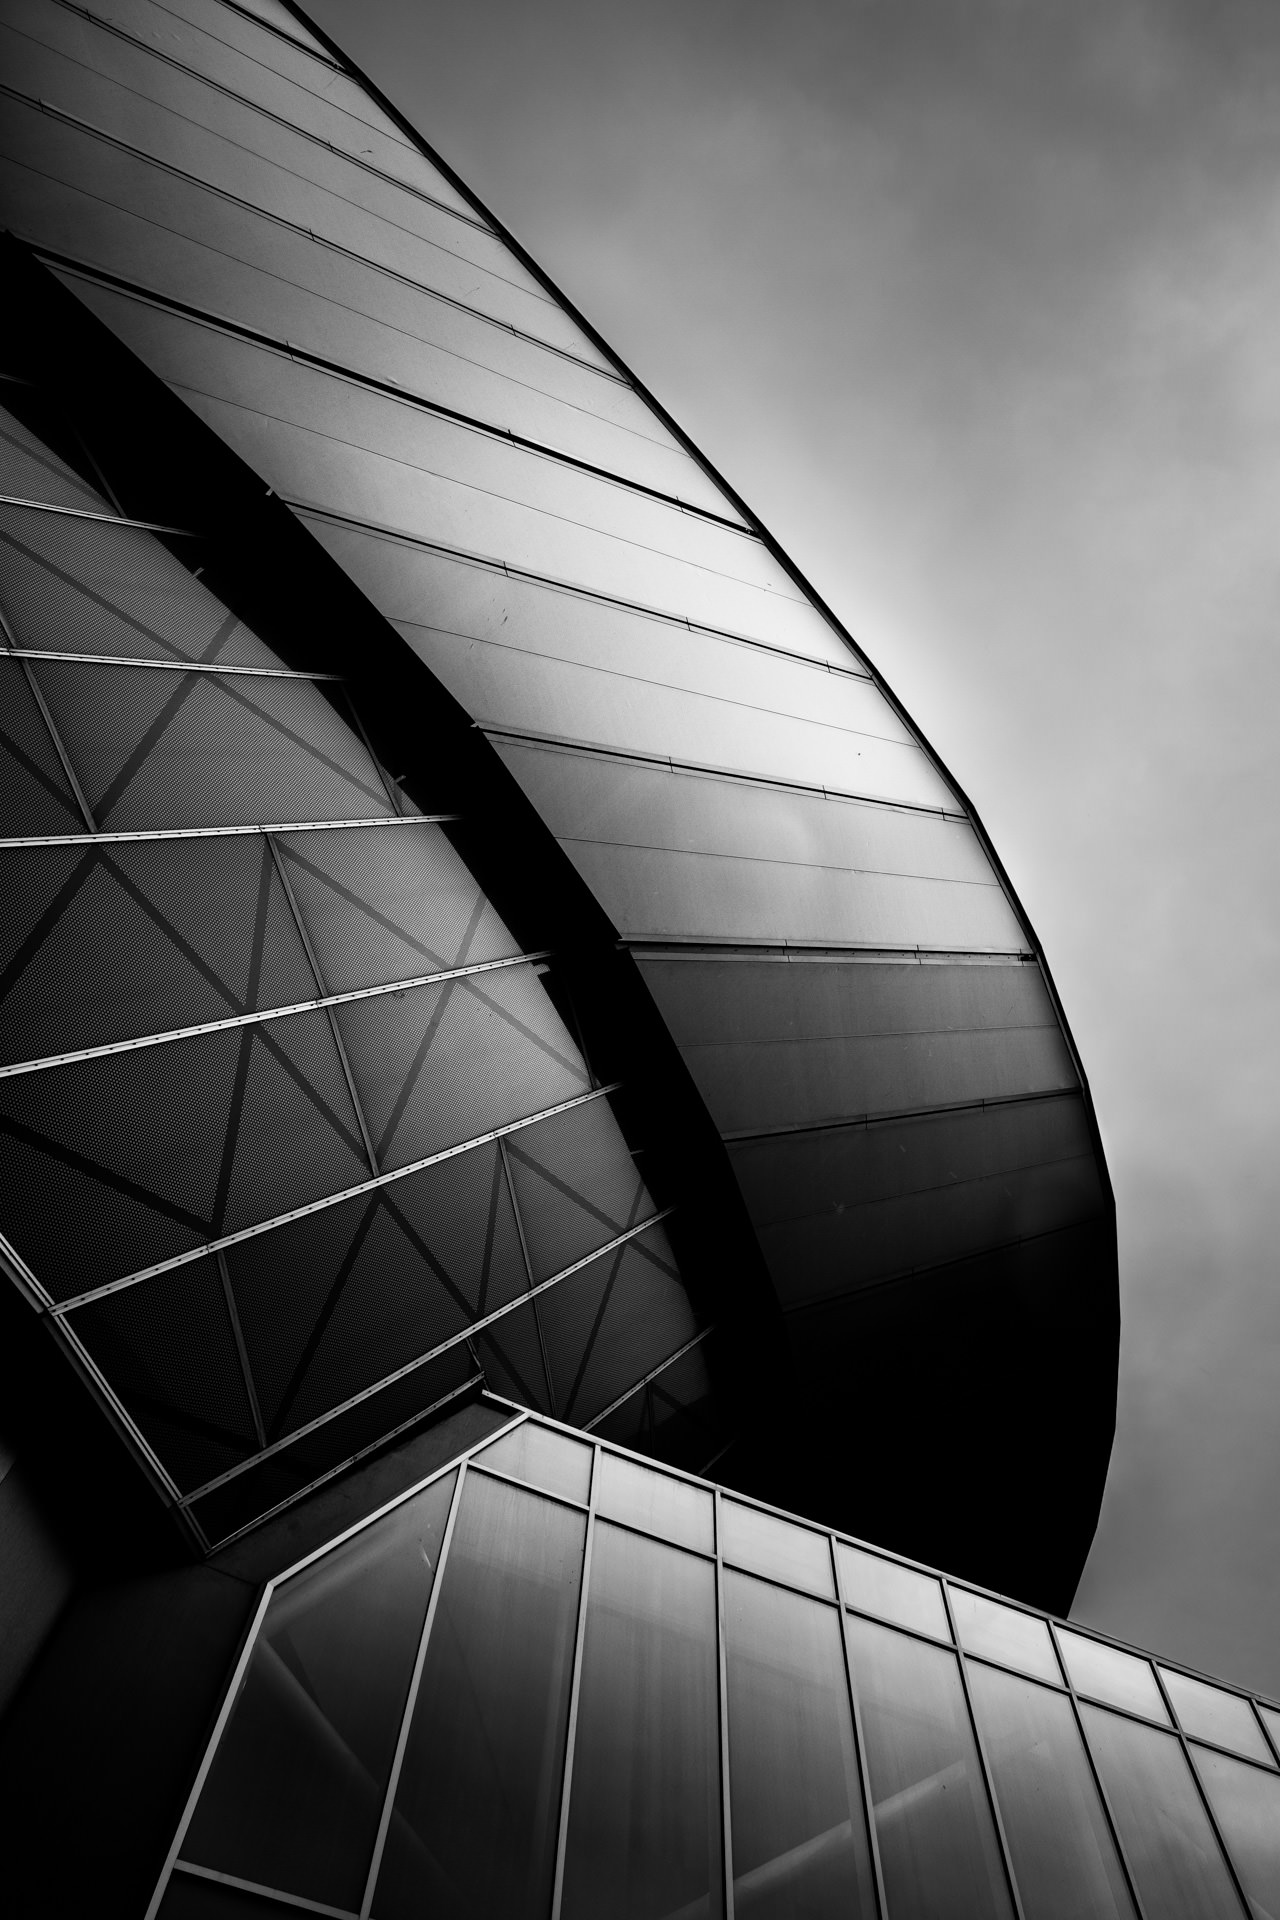 September - back to Digital Splash competitions. This one of the Echo Arena was an entry for the 'Architecture' theme.